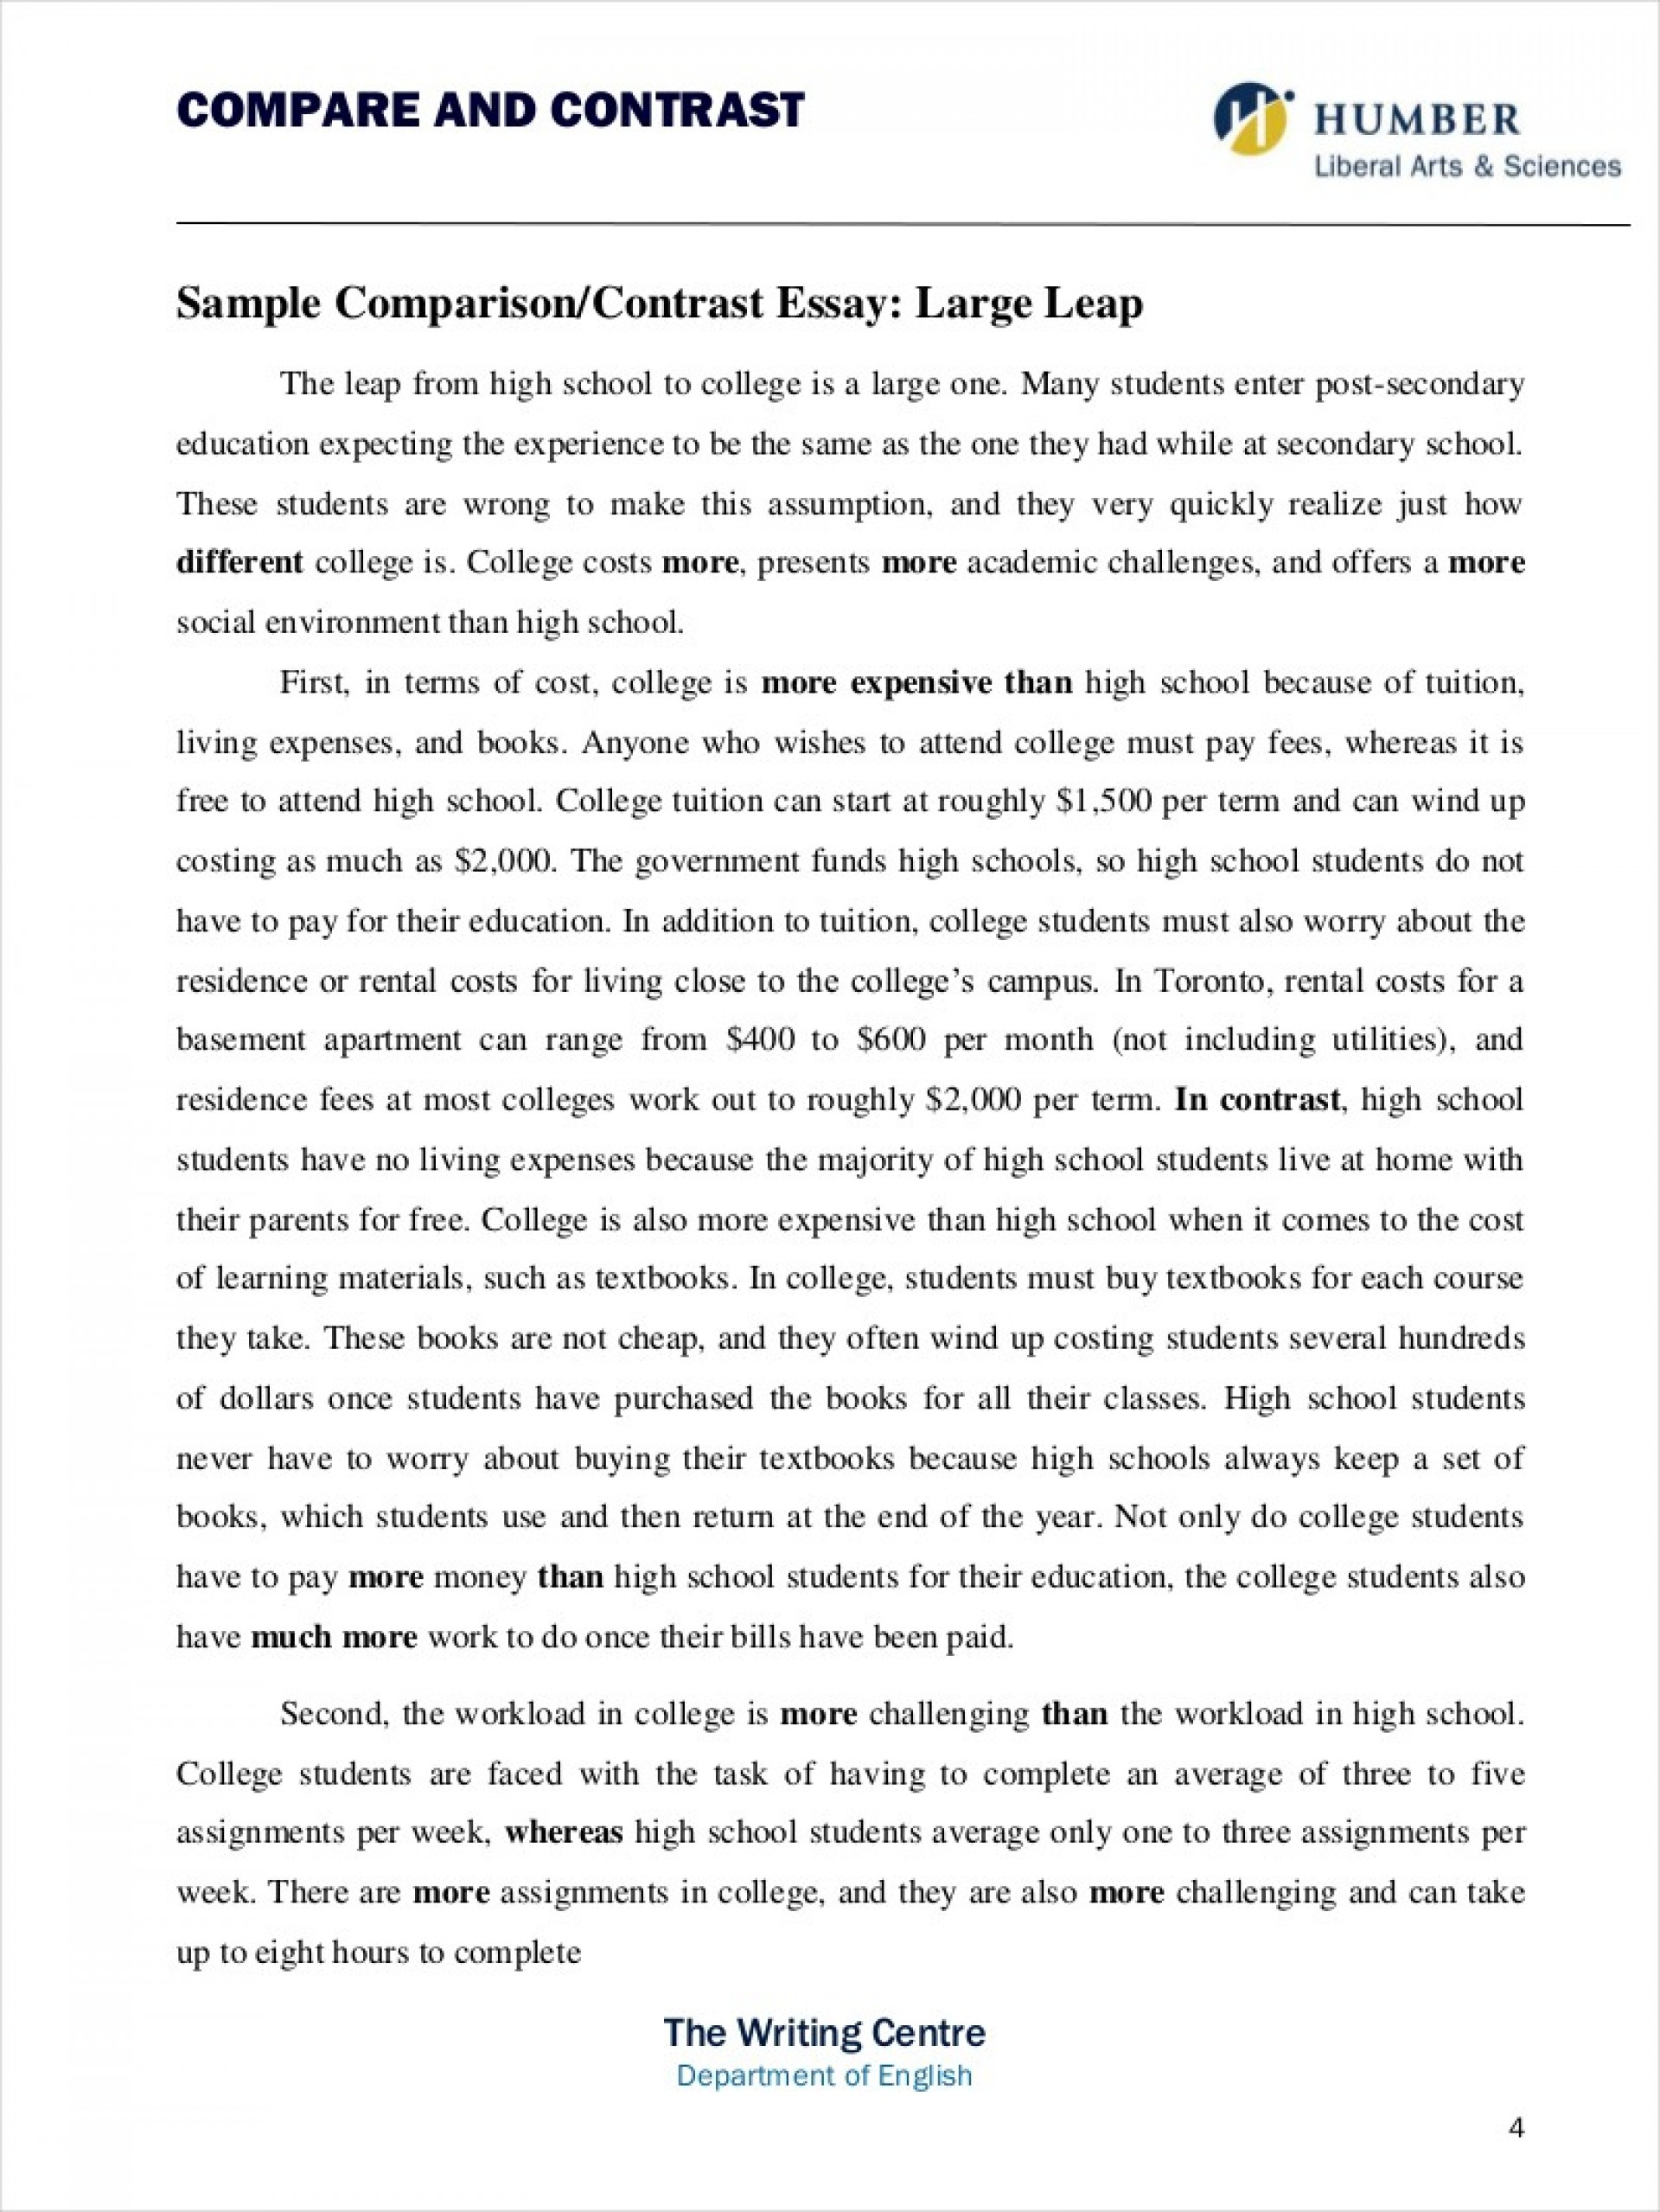 015 Comparing And Contrasting Essay Example Comparative Samples Free Pdf Format Unique Comparison Contrast Sample Compare Structure University Topics On Health 1920